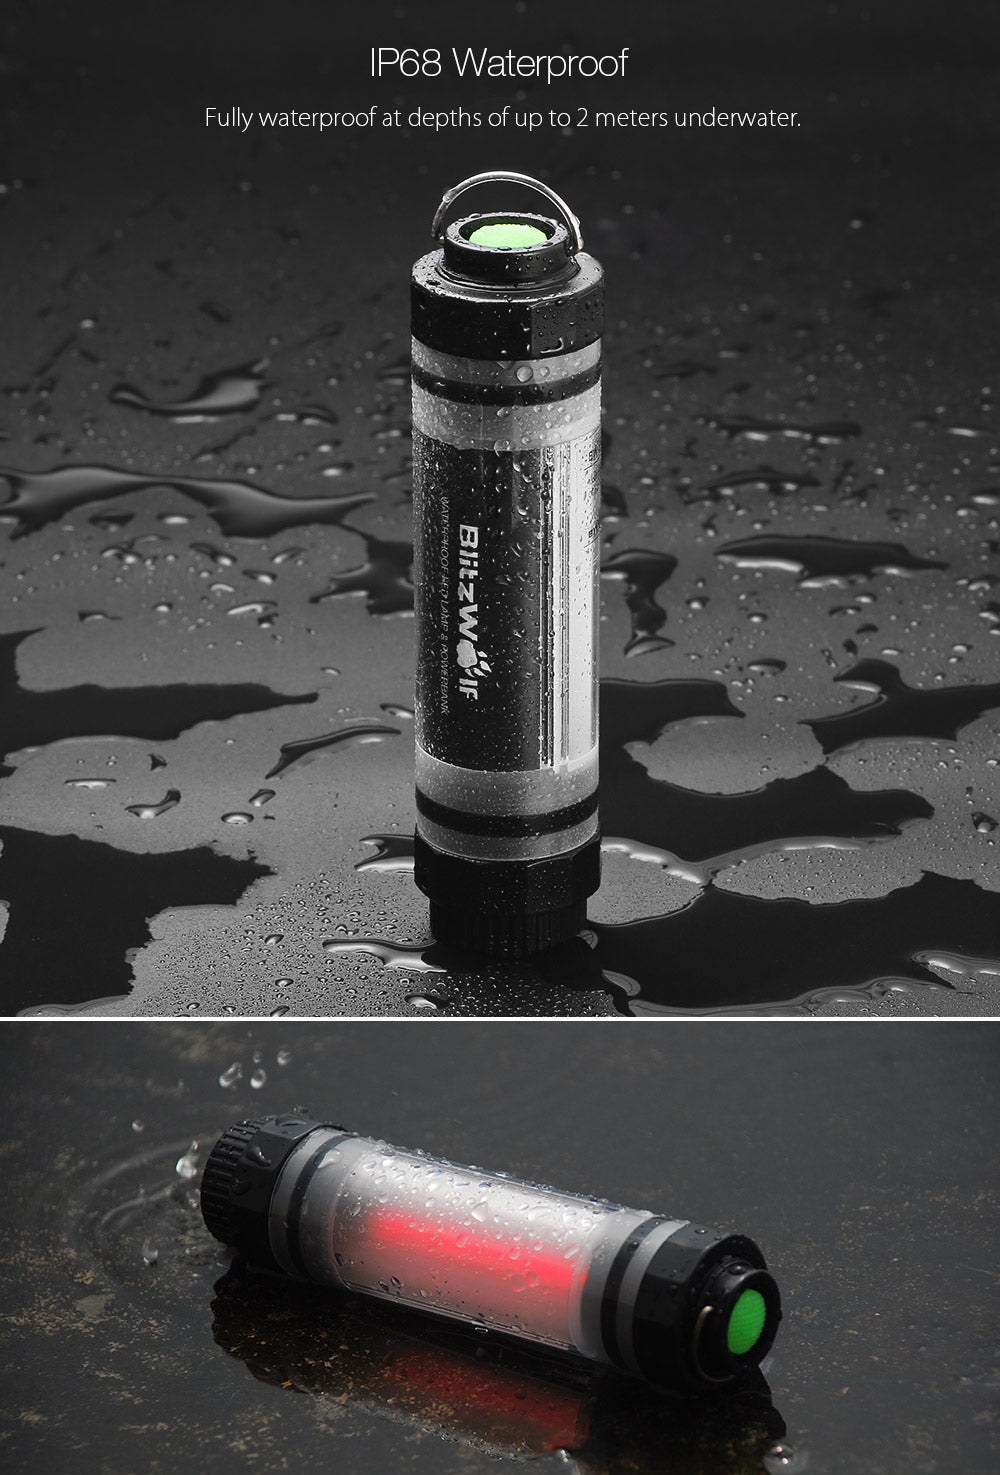 BlitzWolf LT5 Waterproof Powerbank and Emergency Lamp BlitzWolf  BlitzWolf